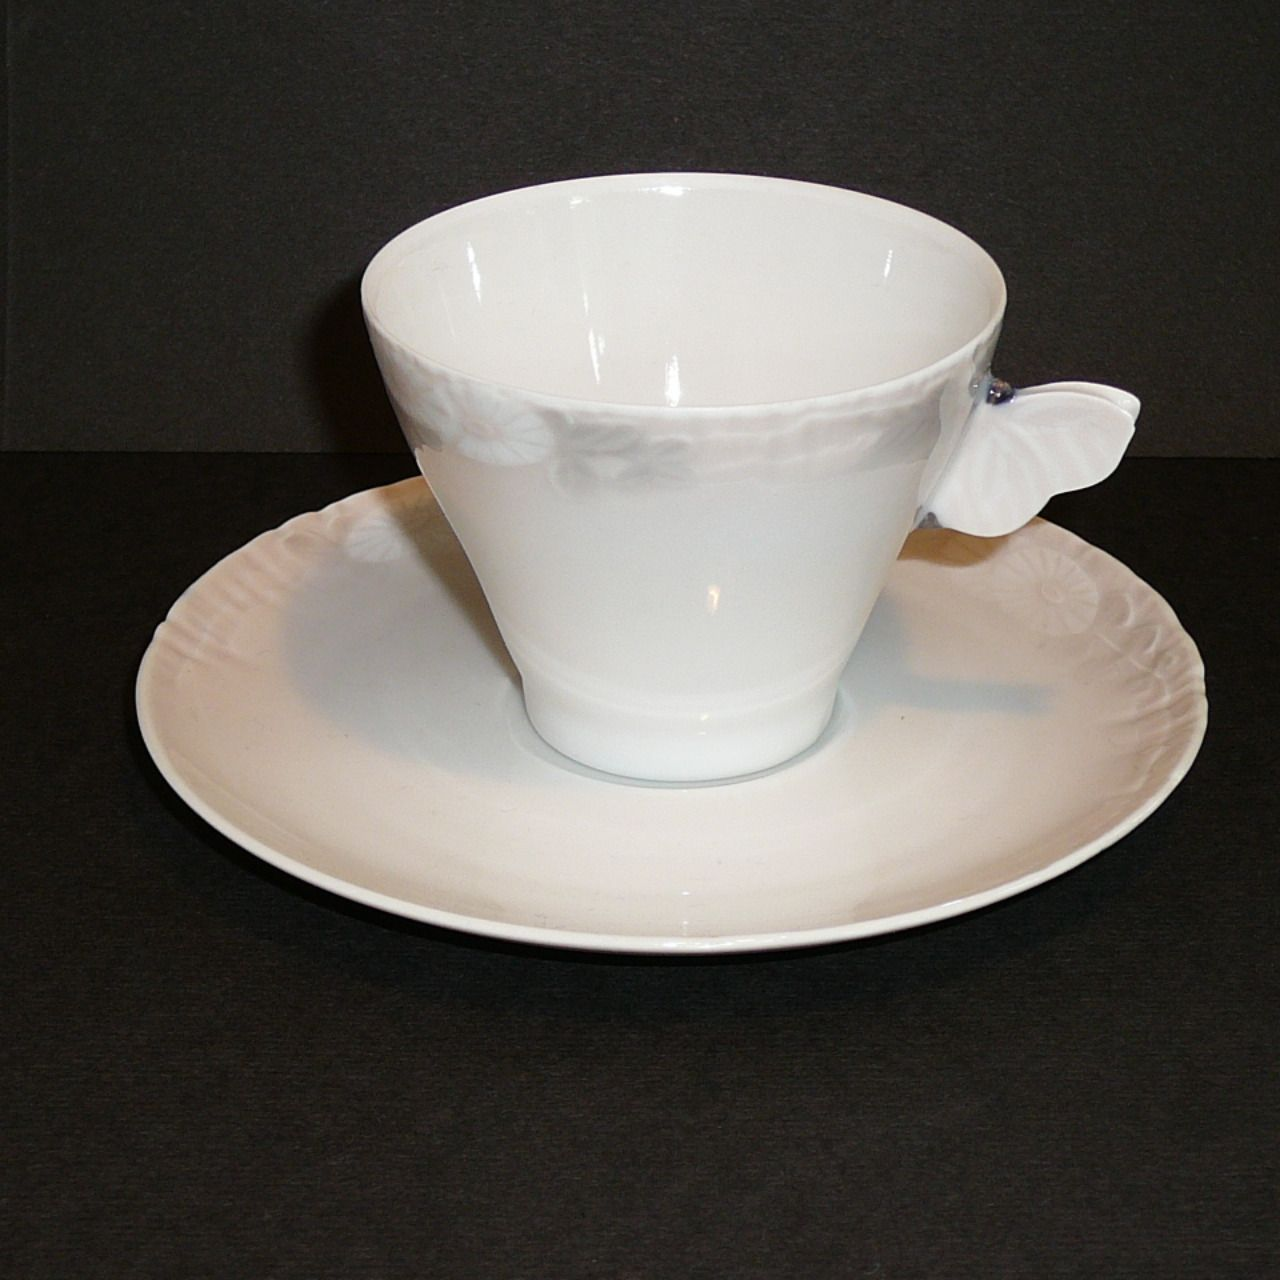 Small coffecup with saucer 1sort all in perfect